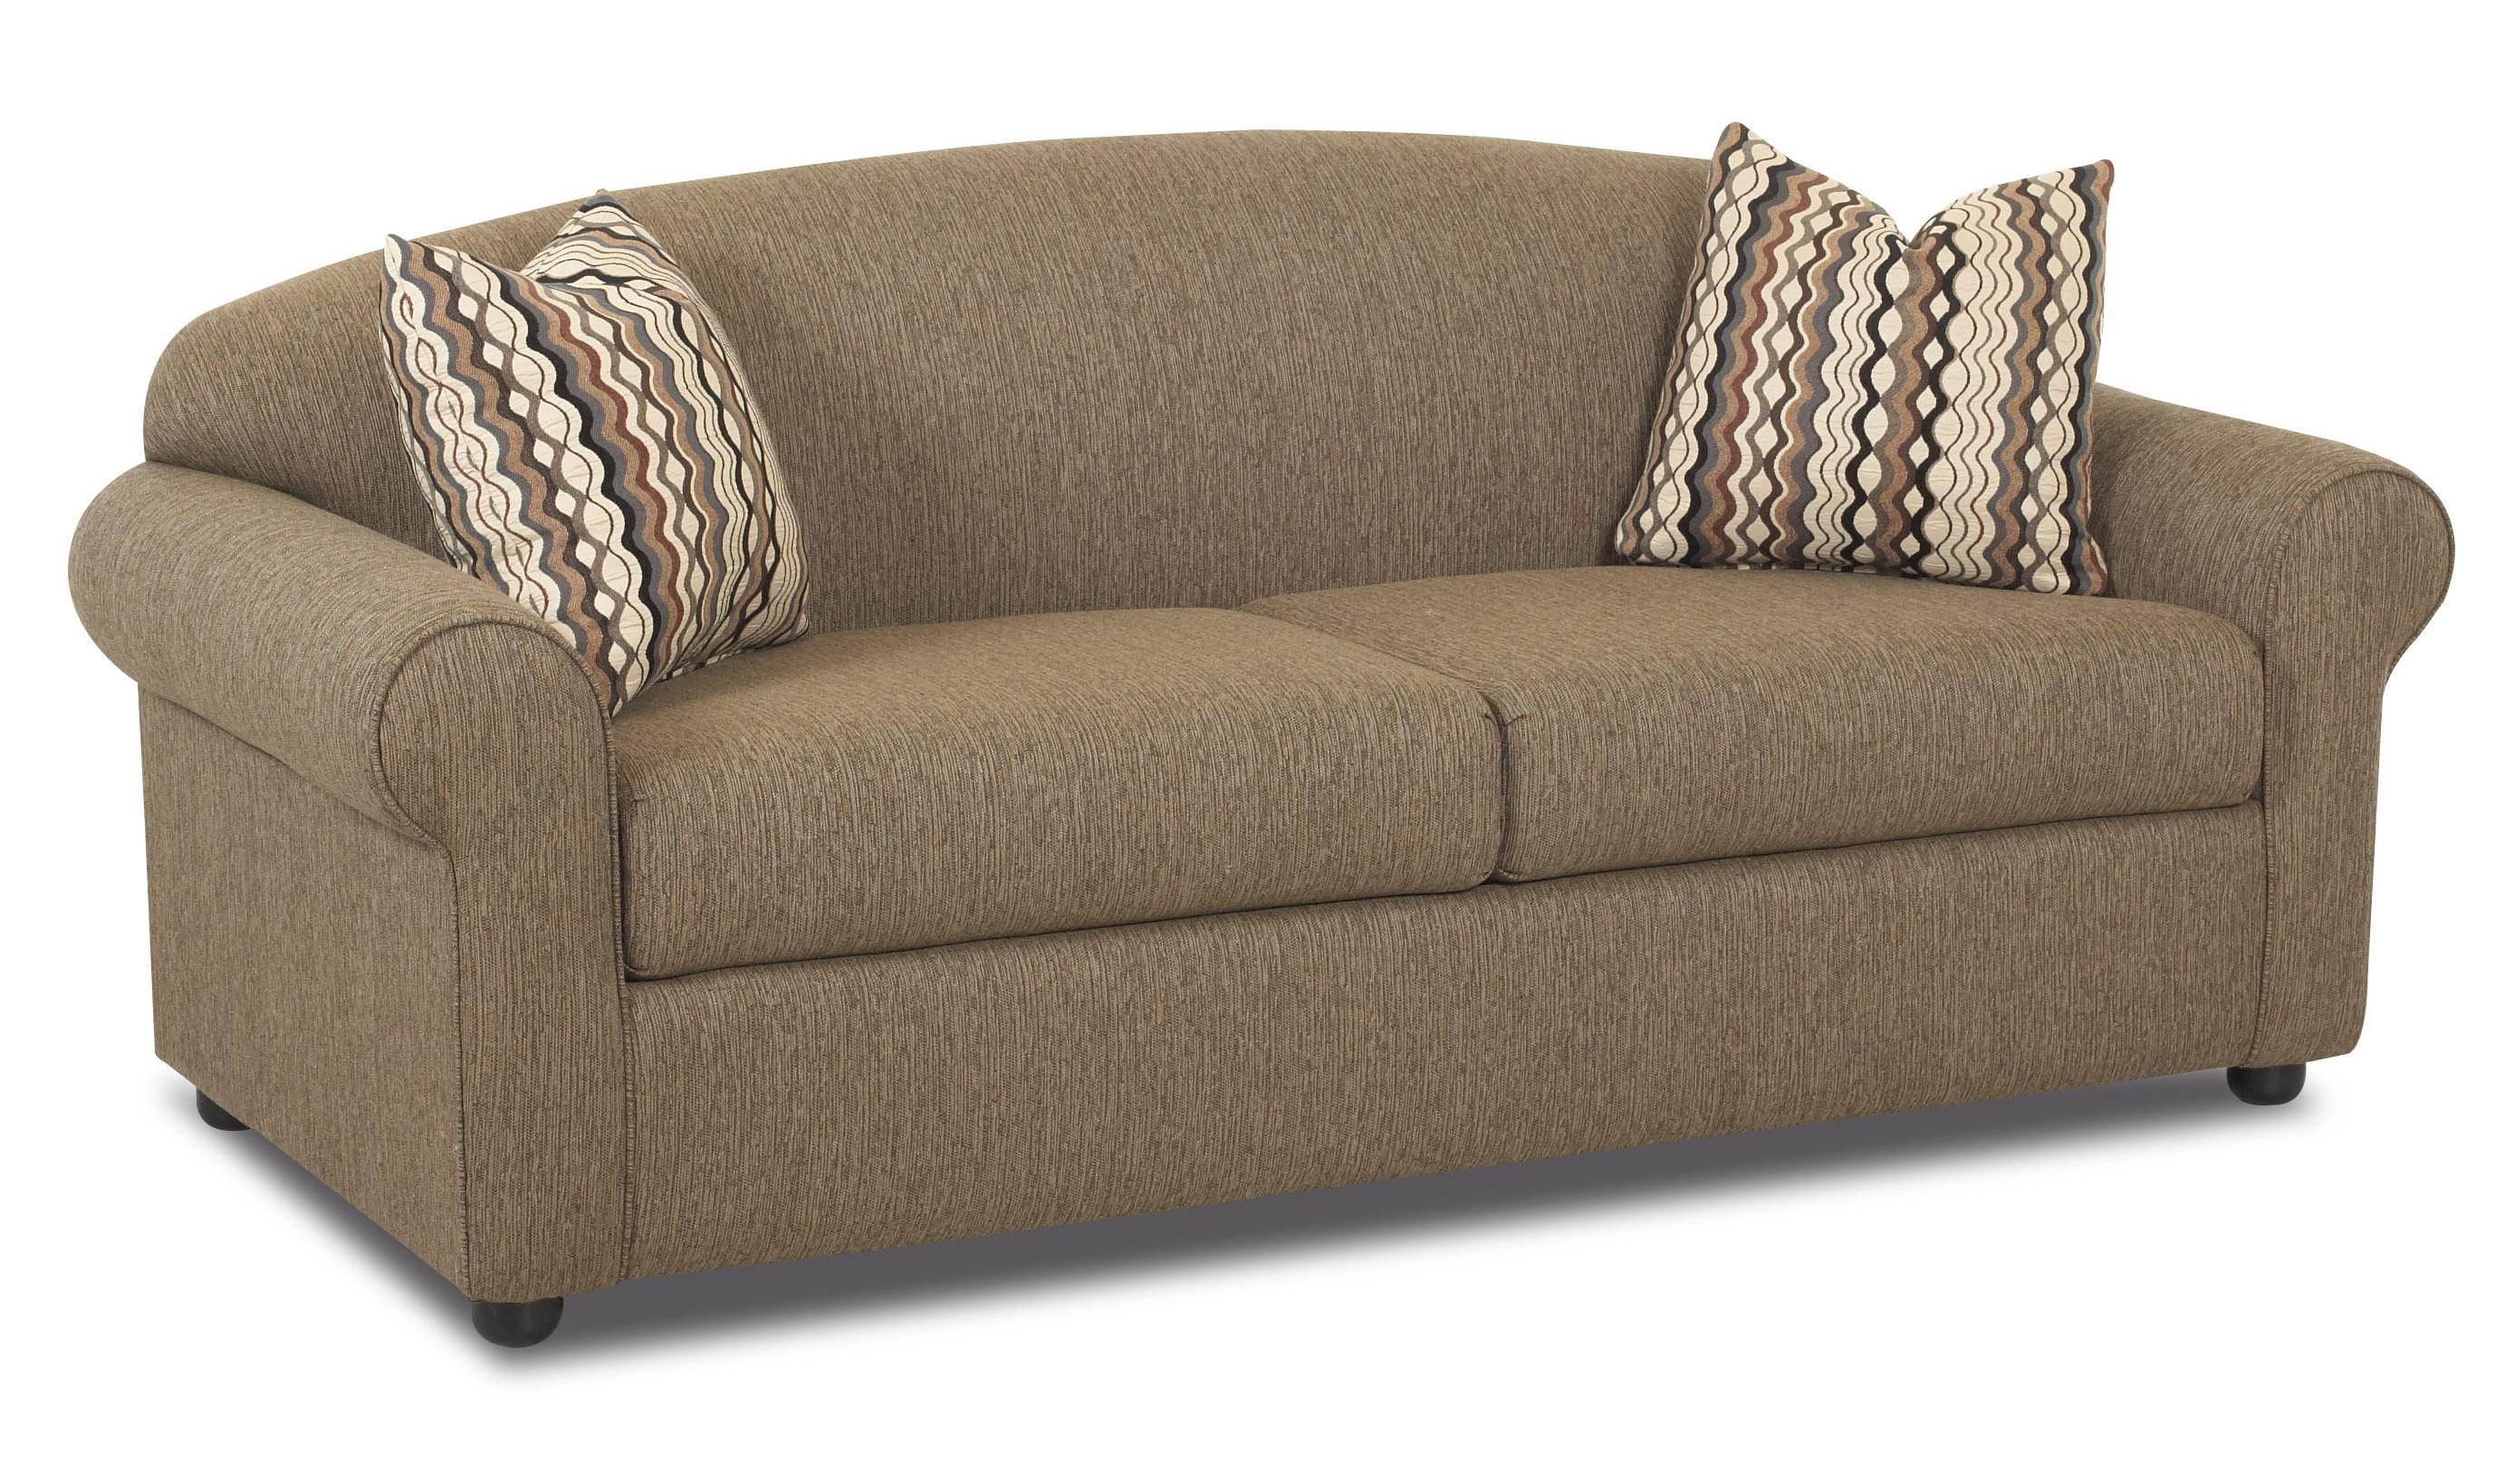 Klaussner Possibilities Innerspring Regular Sleeper Sofa